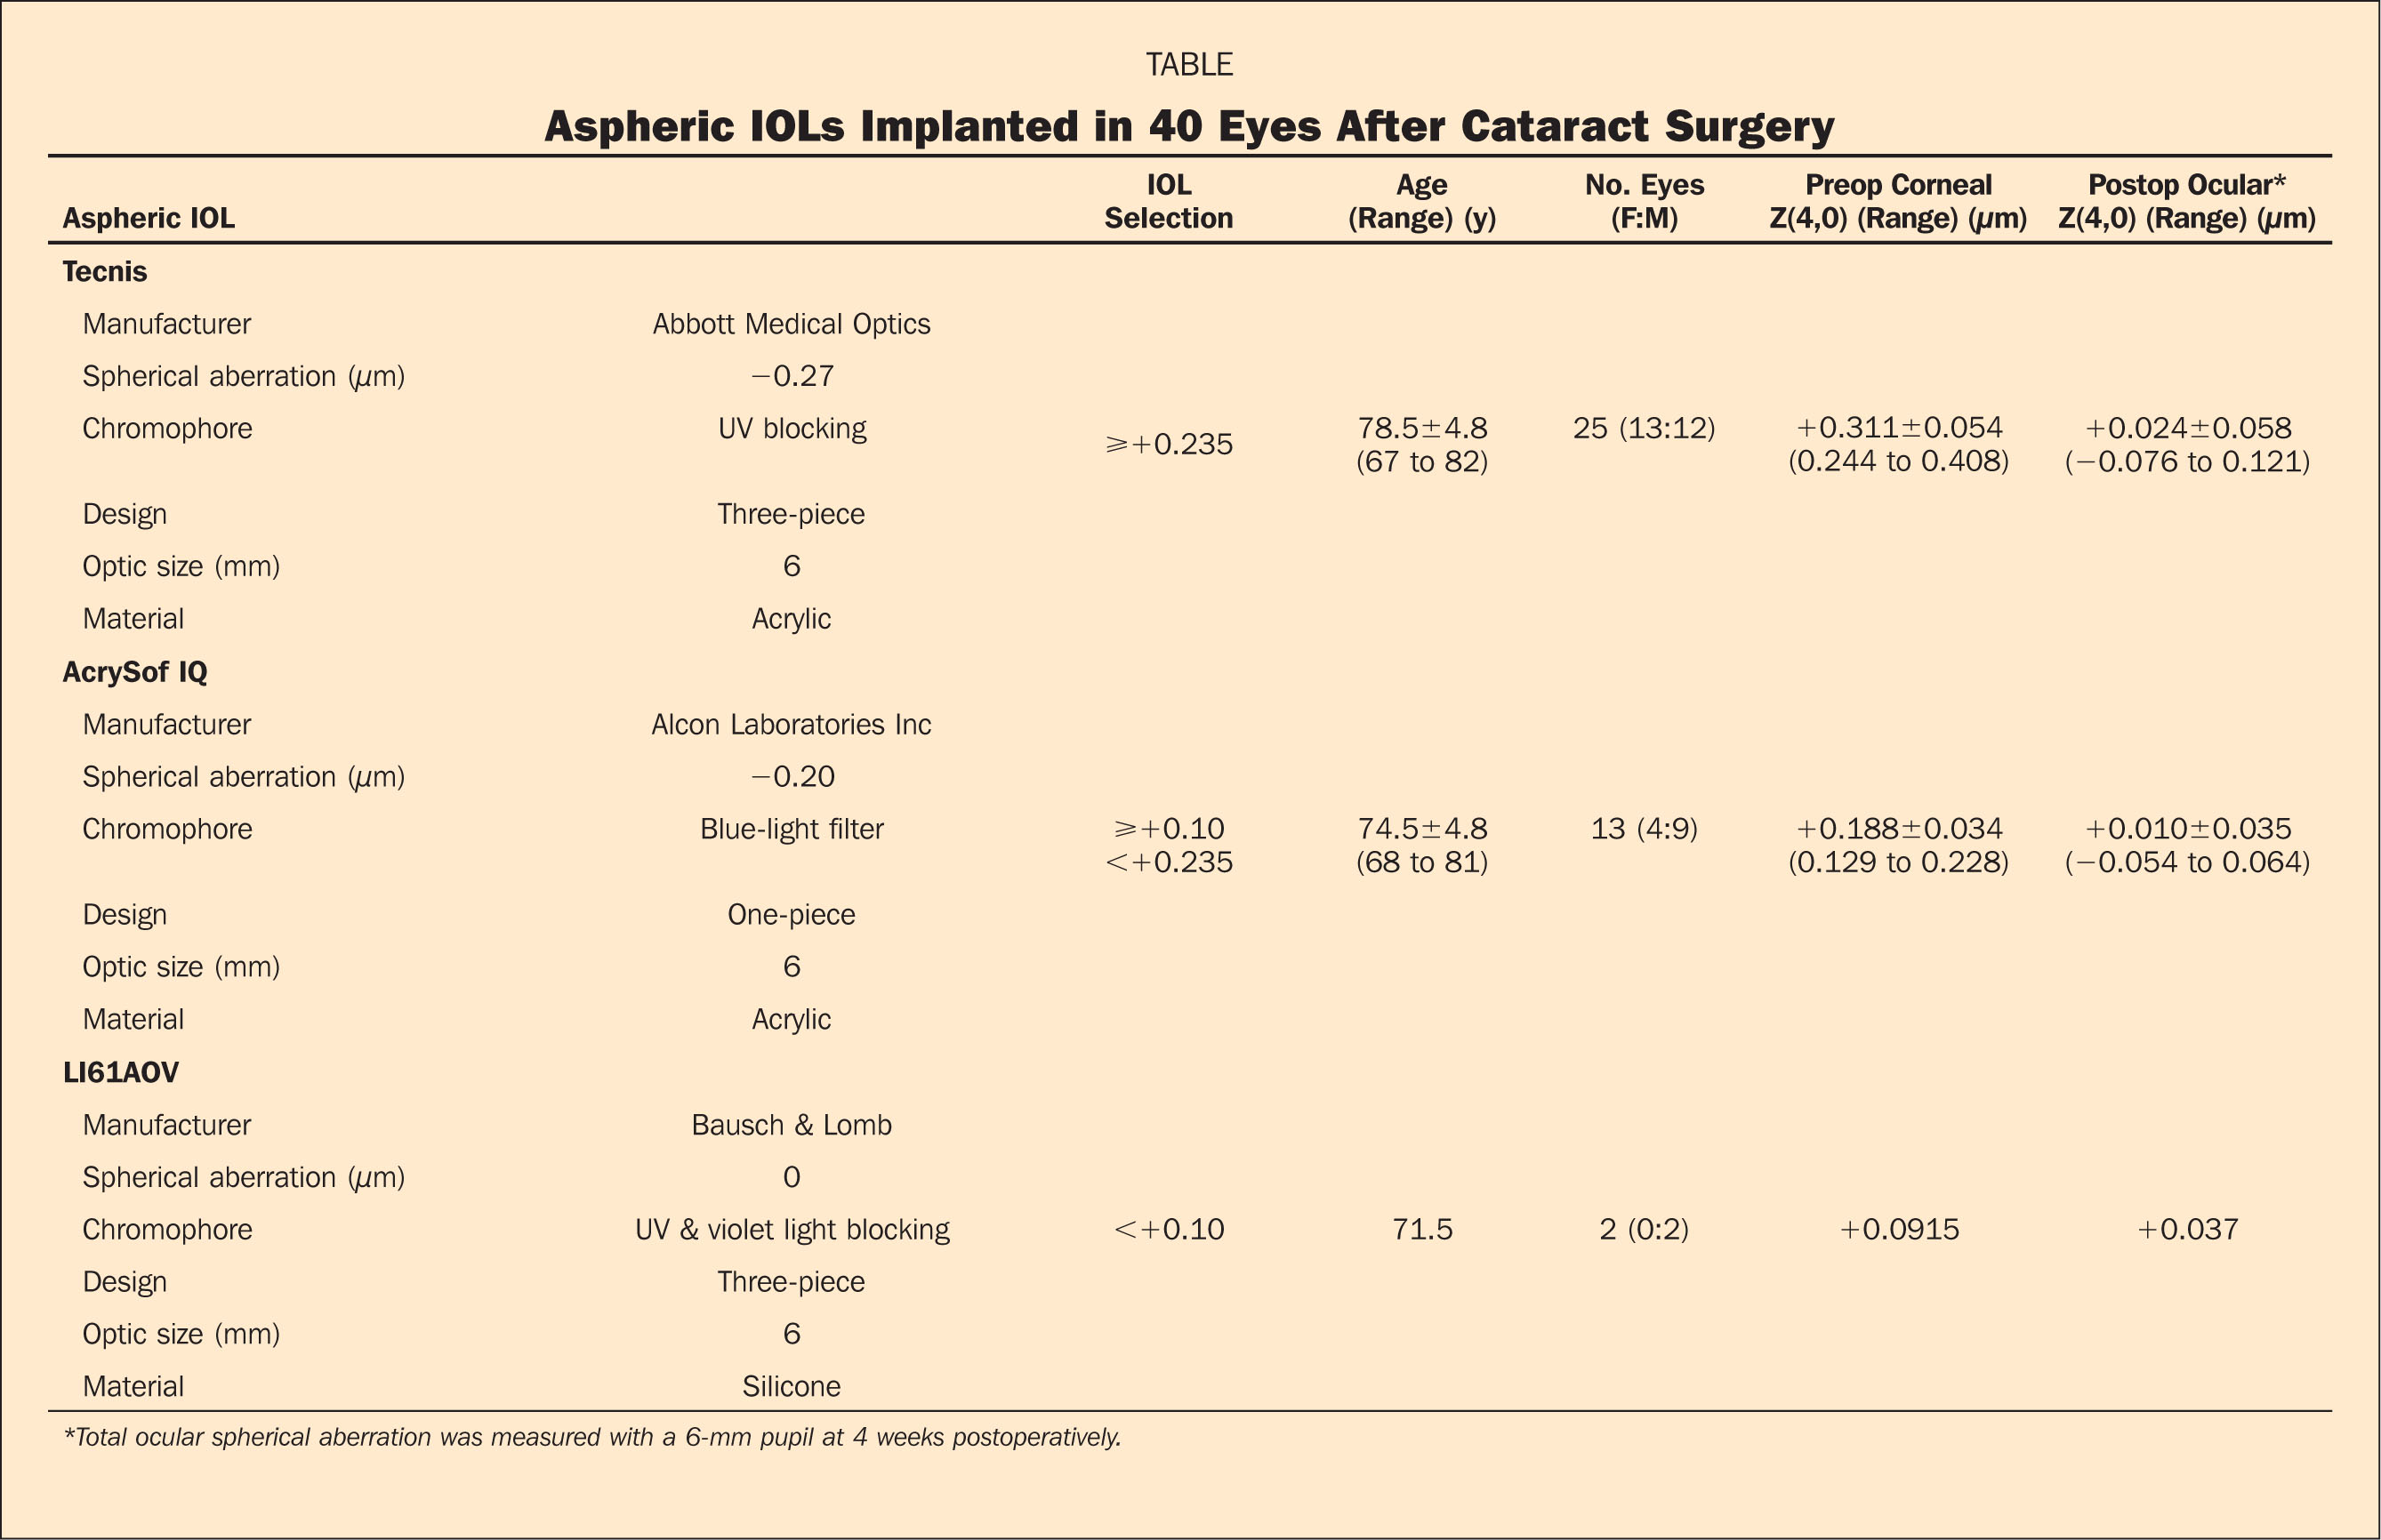 Aspheric IOLs Implanted in 40 Eyes After Cataract Surgery